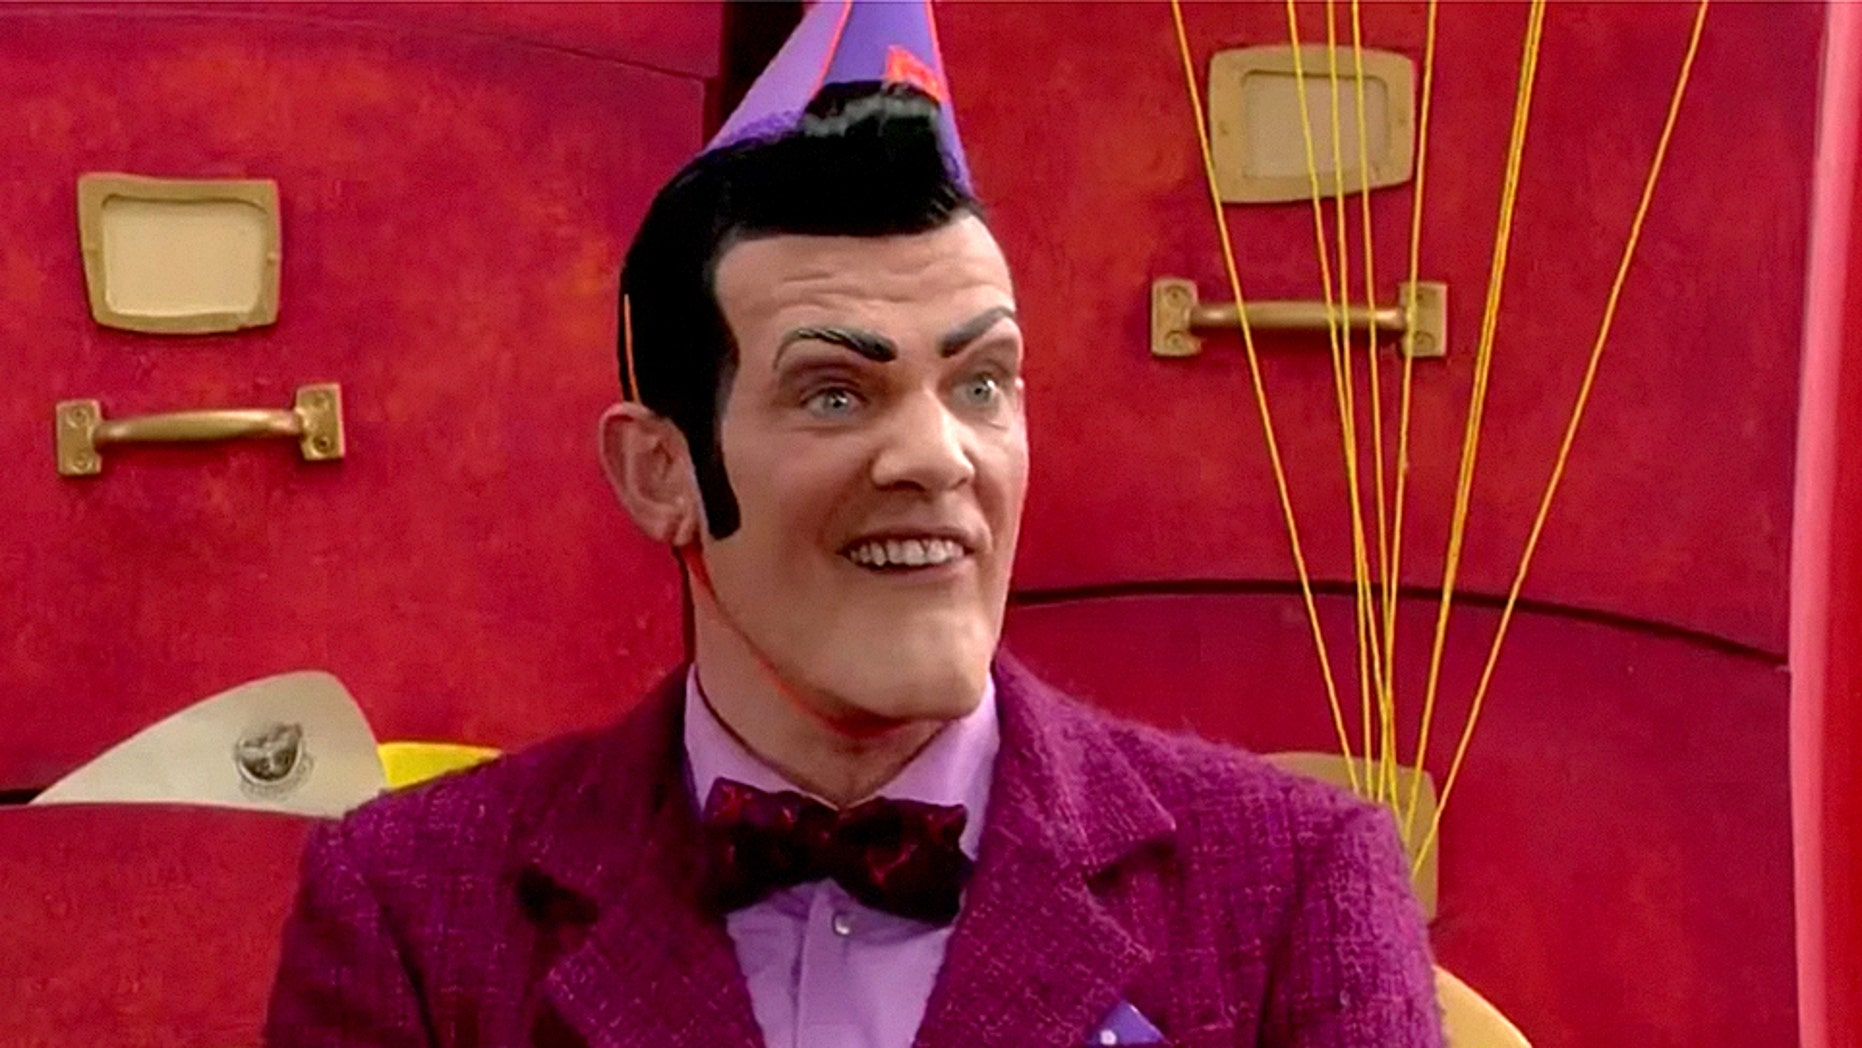 """Stefan Karl Stefansson, the Icelandic actor known for his role as the """"Lazy Town"""" villain, has died after a battle with cancer at the age of 43."""